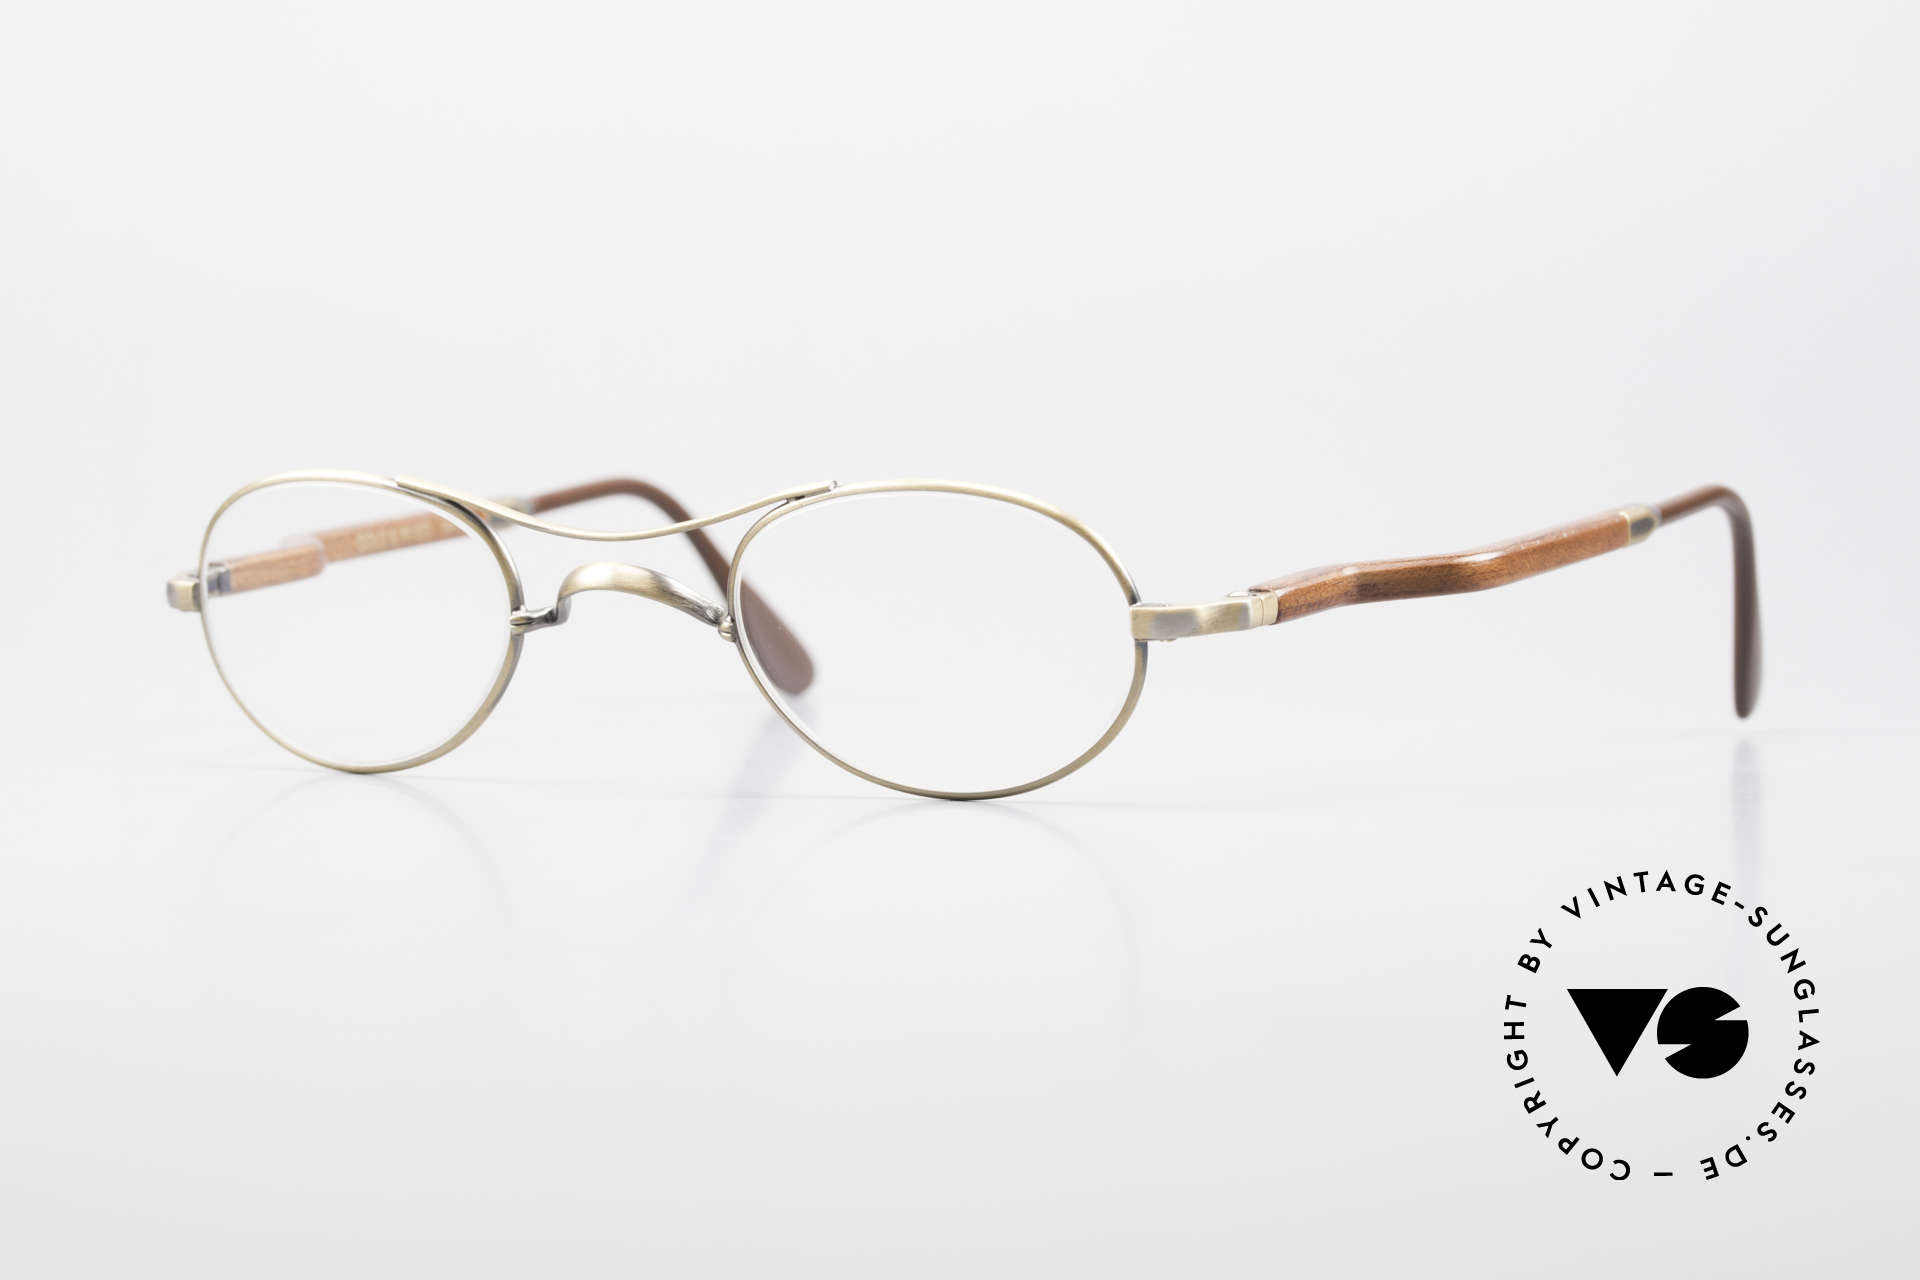 Gold & Wood 352 Luxury Wooden Specs Oval 90's, Gold & Wood Paris glasses, 352-33 in size 44-24, Made for Men and Women